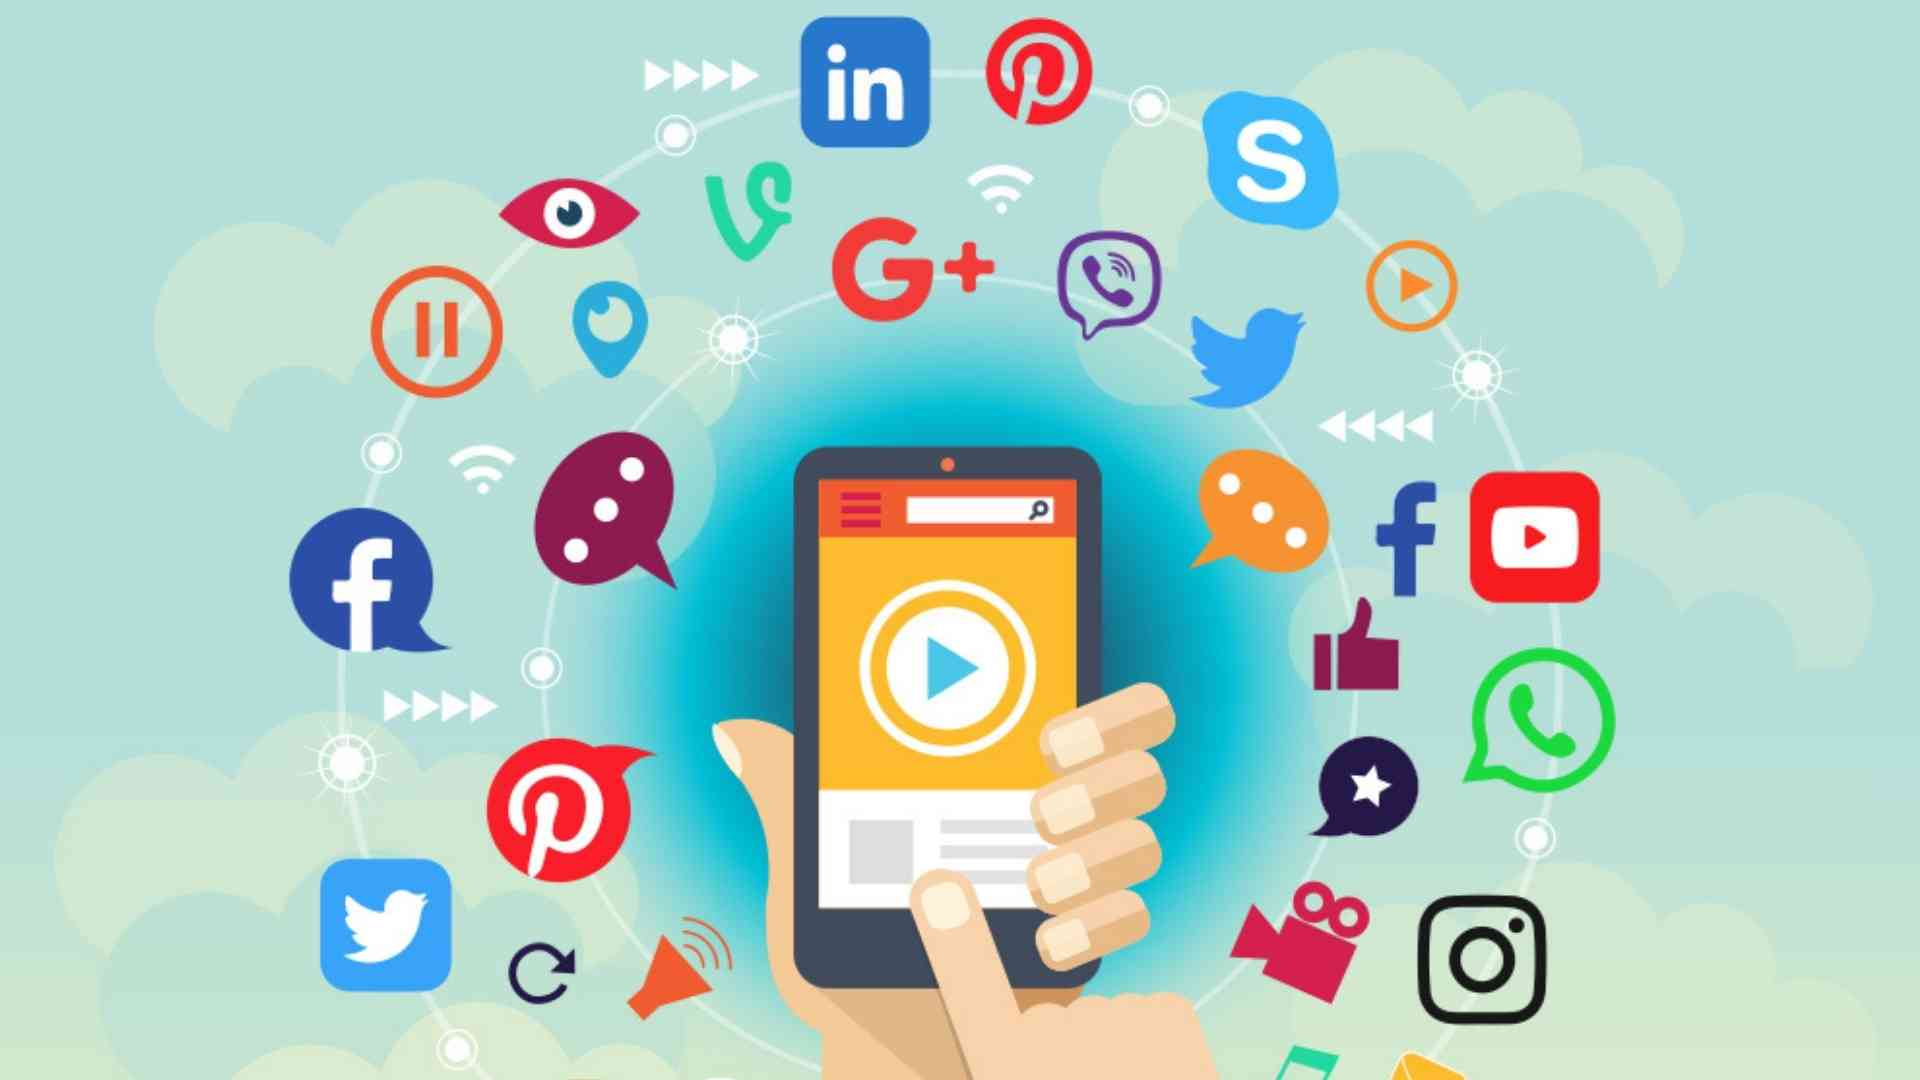 Animated picture about Social media